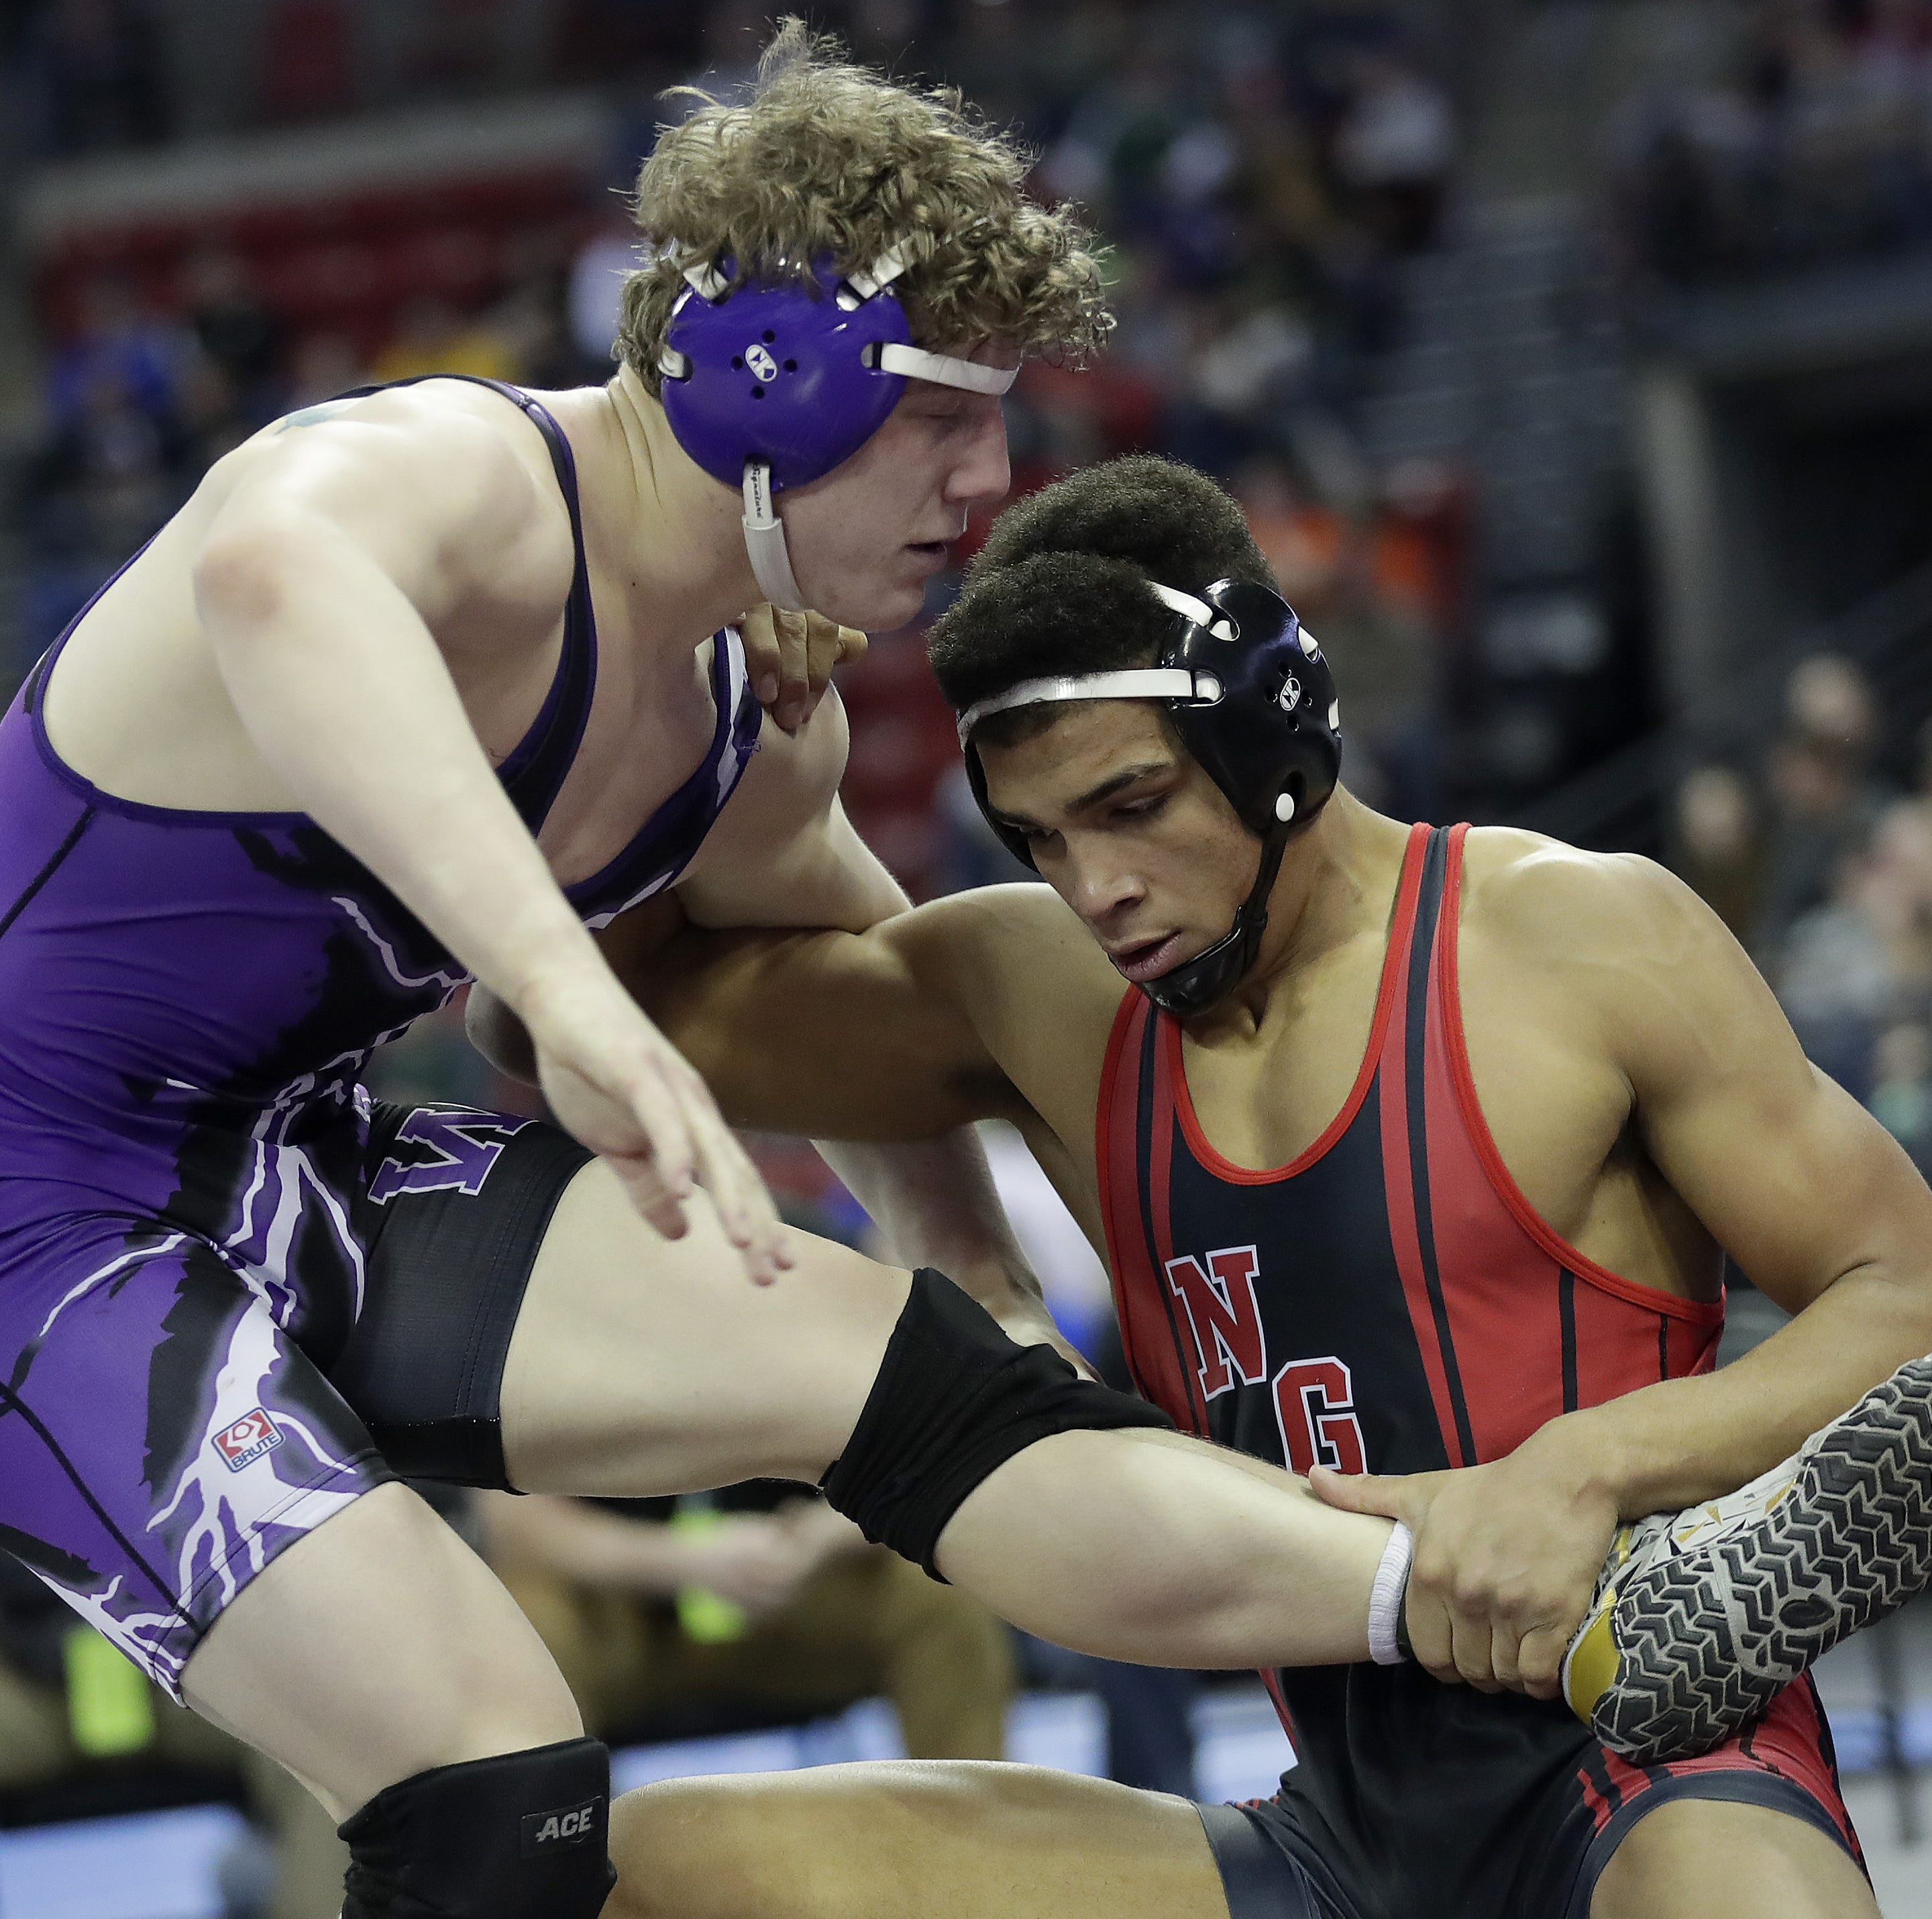 High school wrestling: N/G/L's Stephen Buchanan continuing career at Wyoming